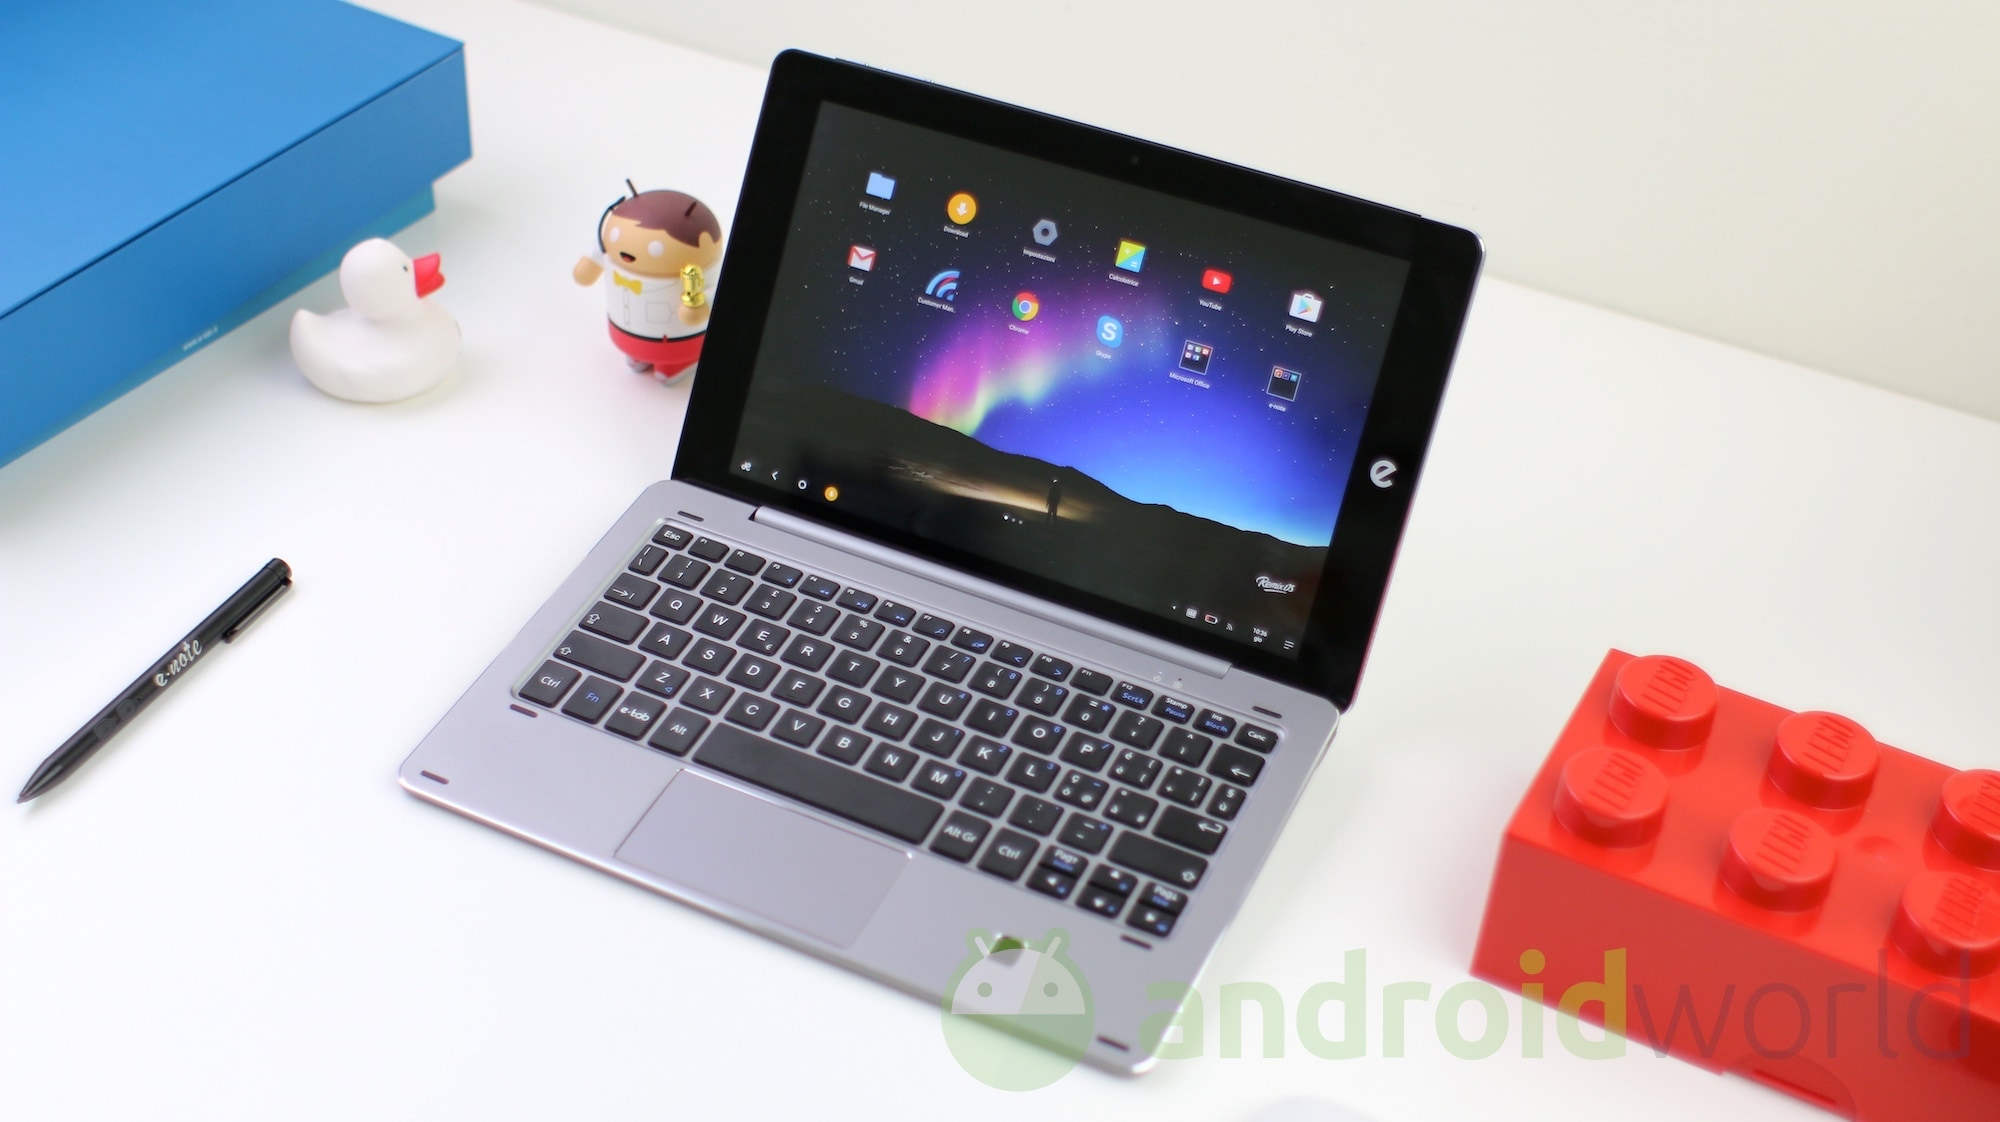 Microtech e-Tab Pro (Win10 / Remix OS), la recensione (foto e video)